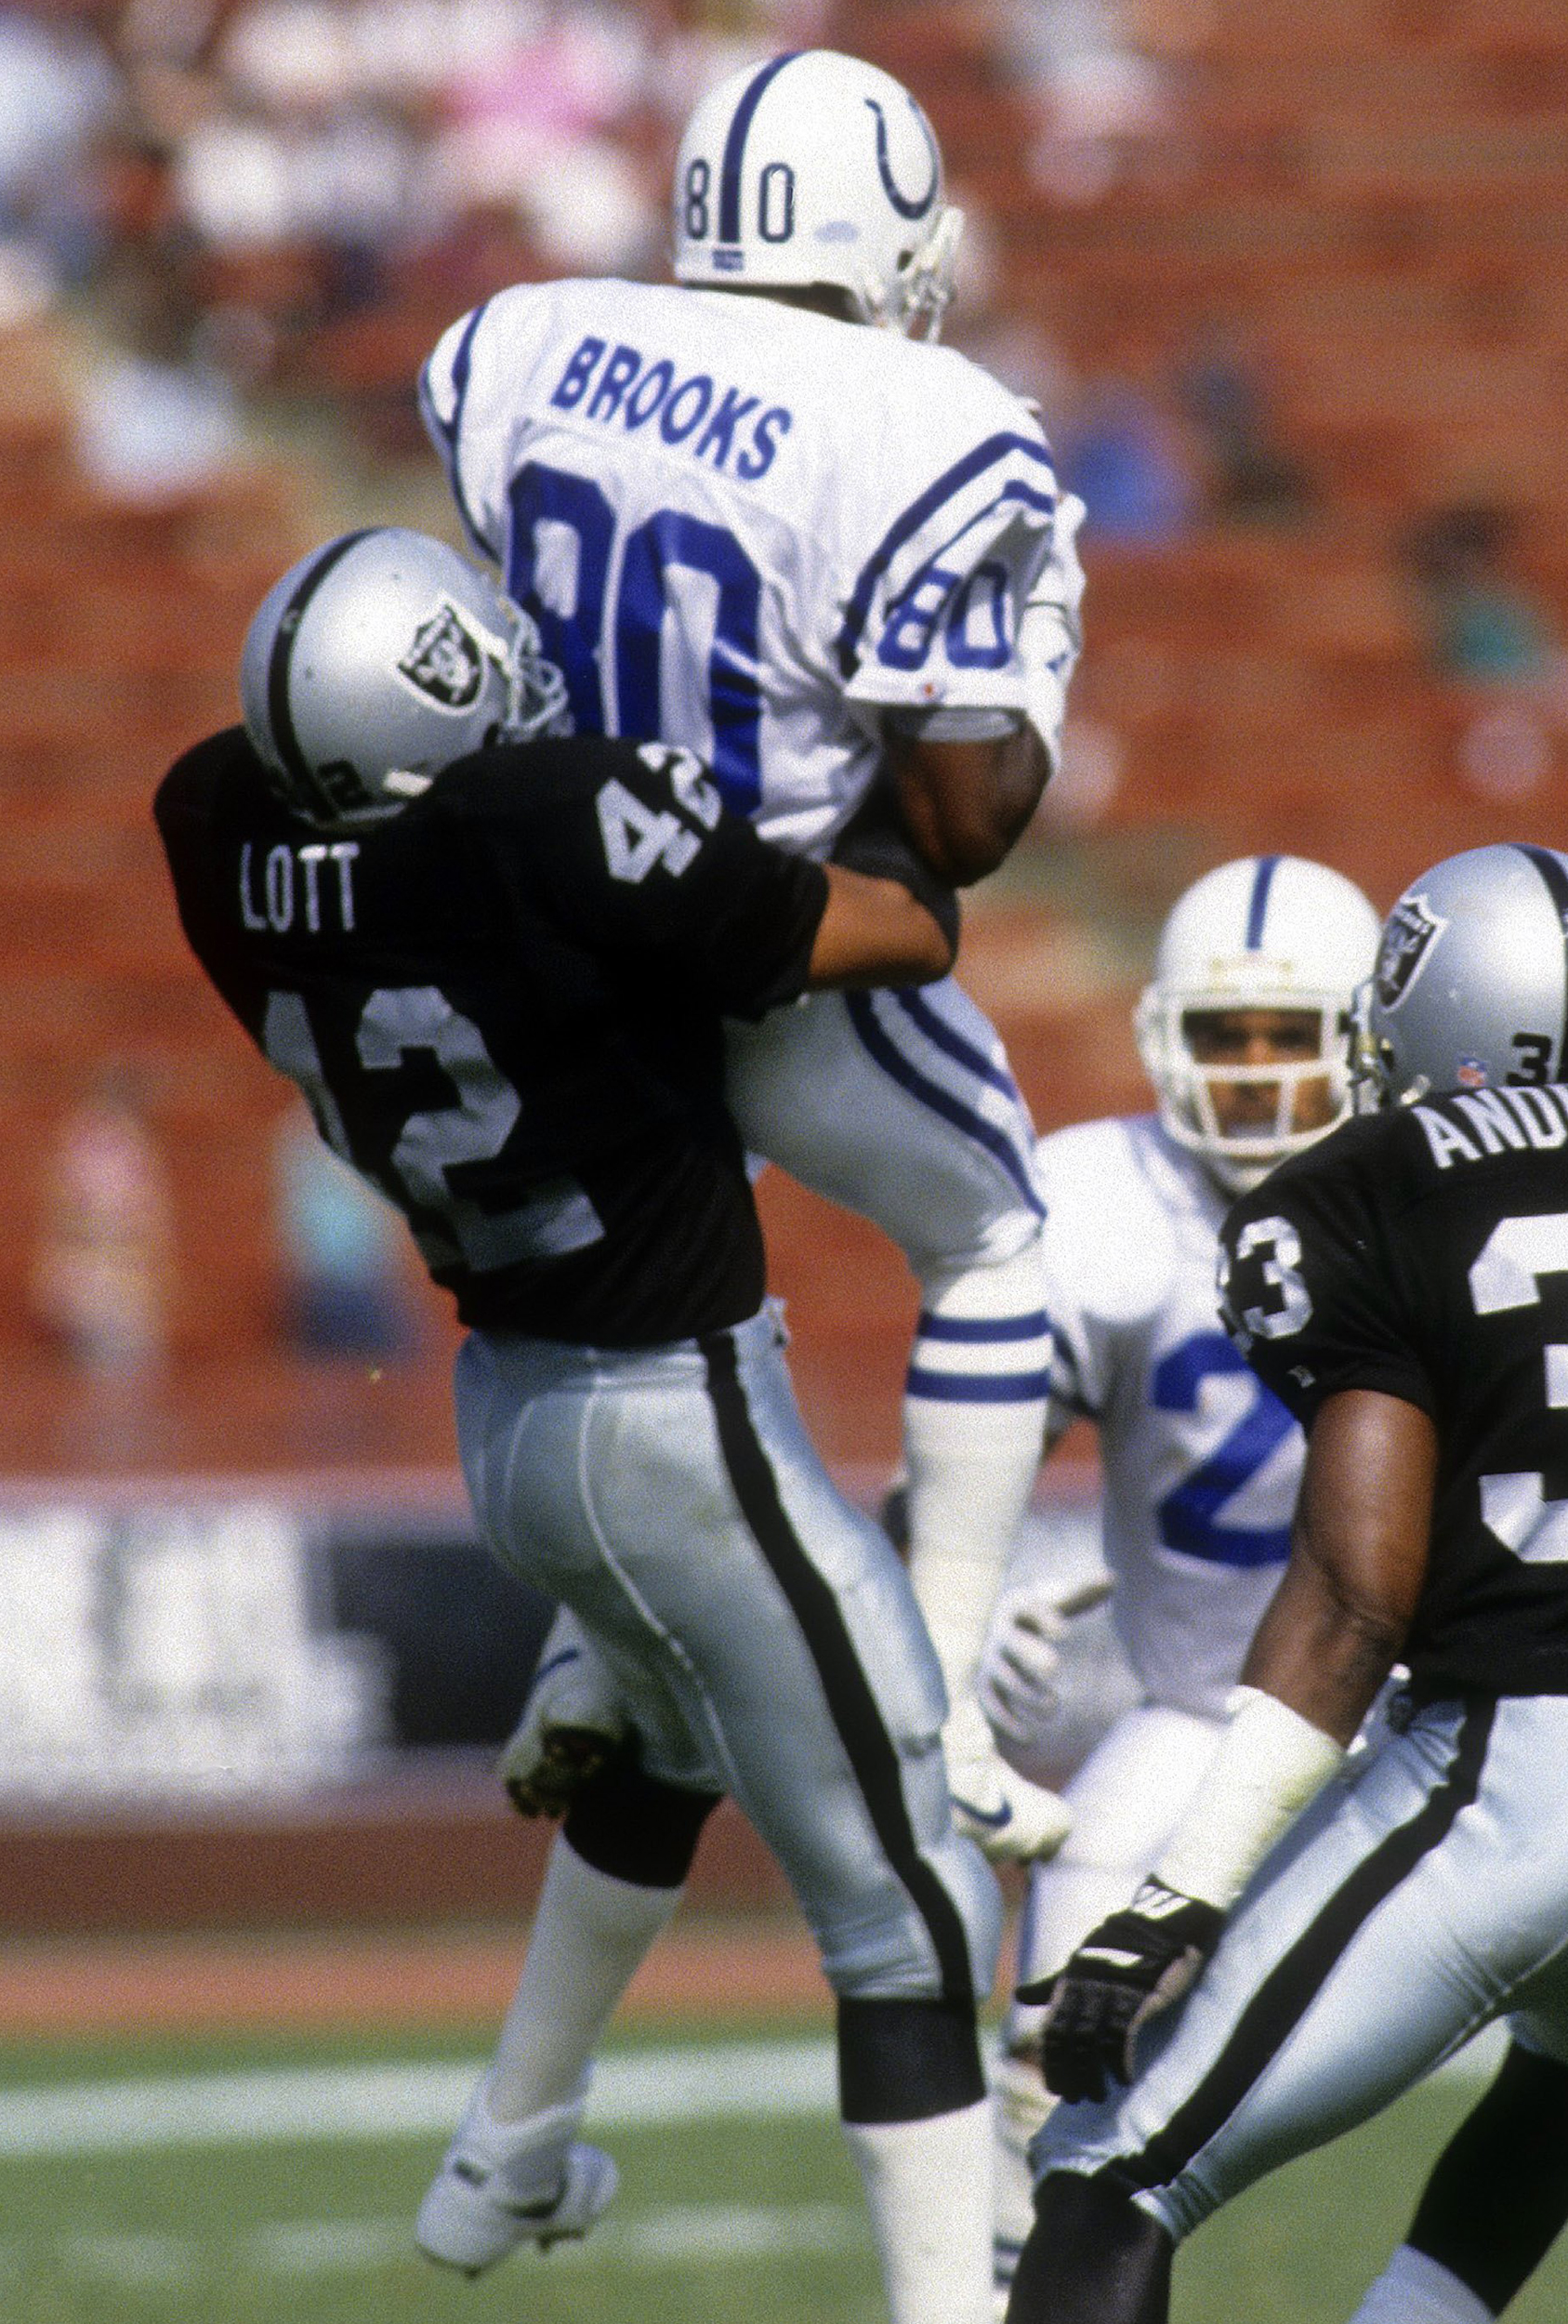 cdd3675d Ronnie Lott leading the charge to keep Raiders in Oakland